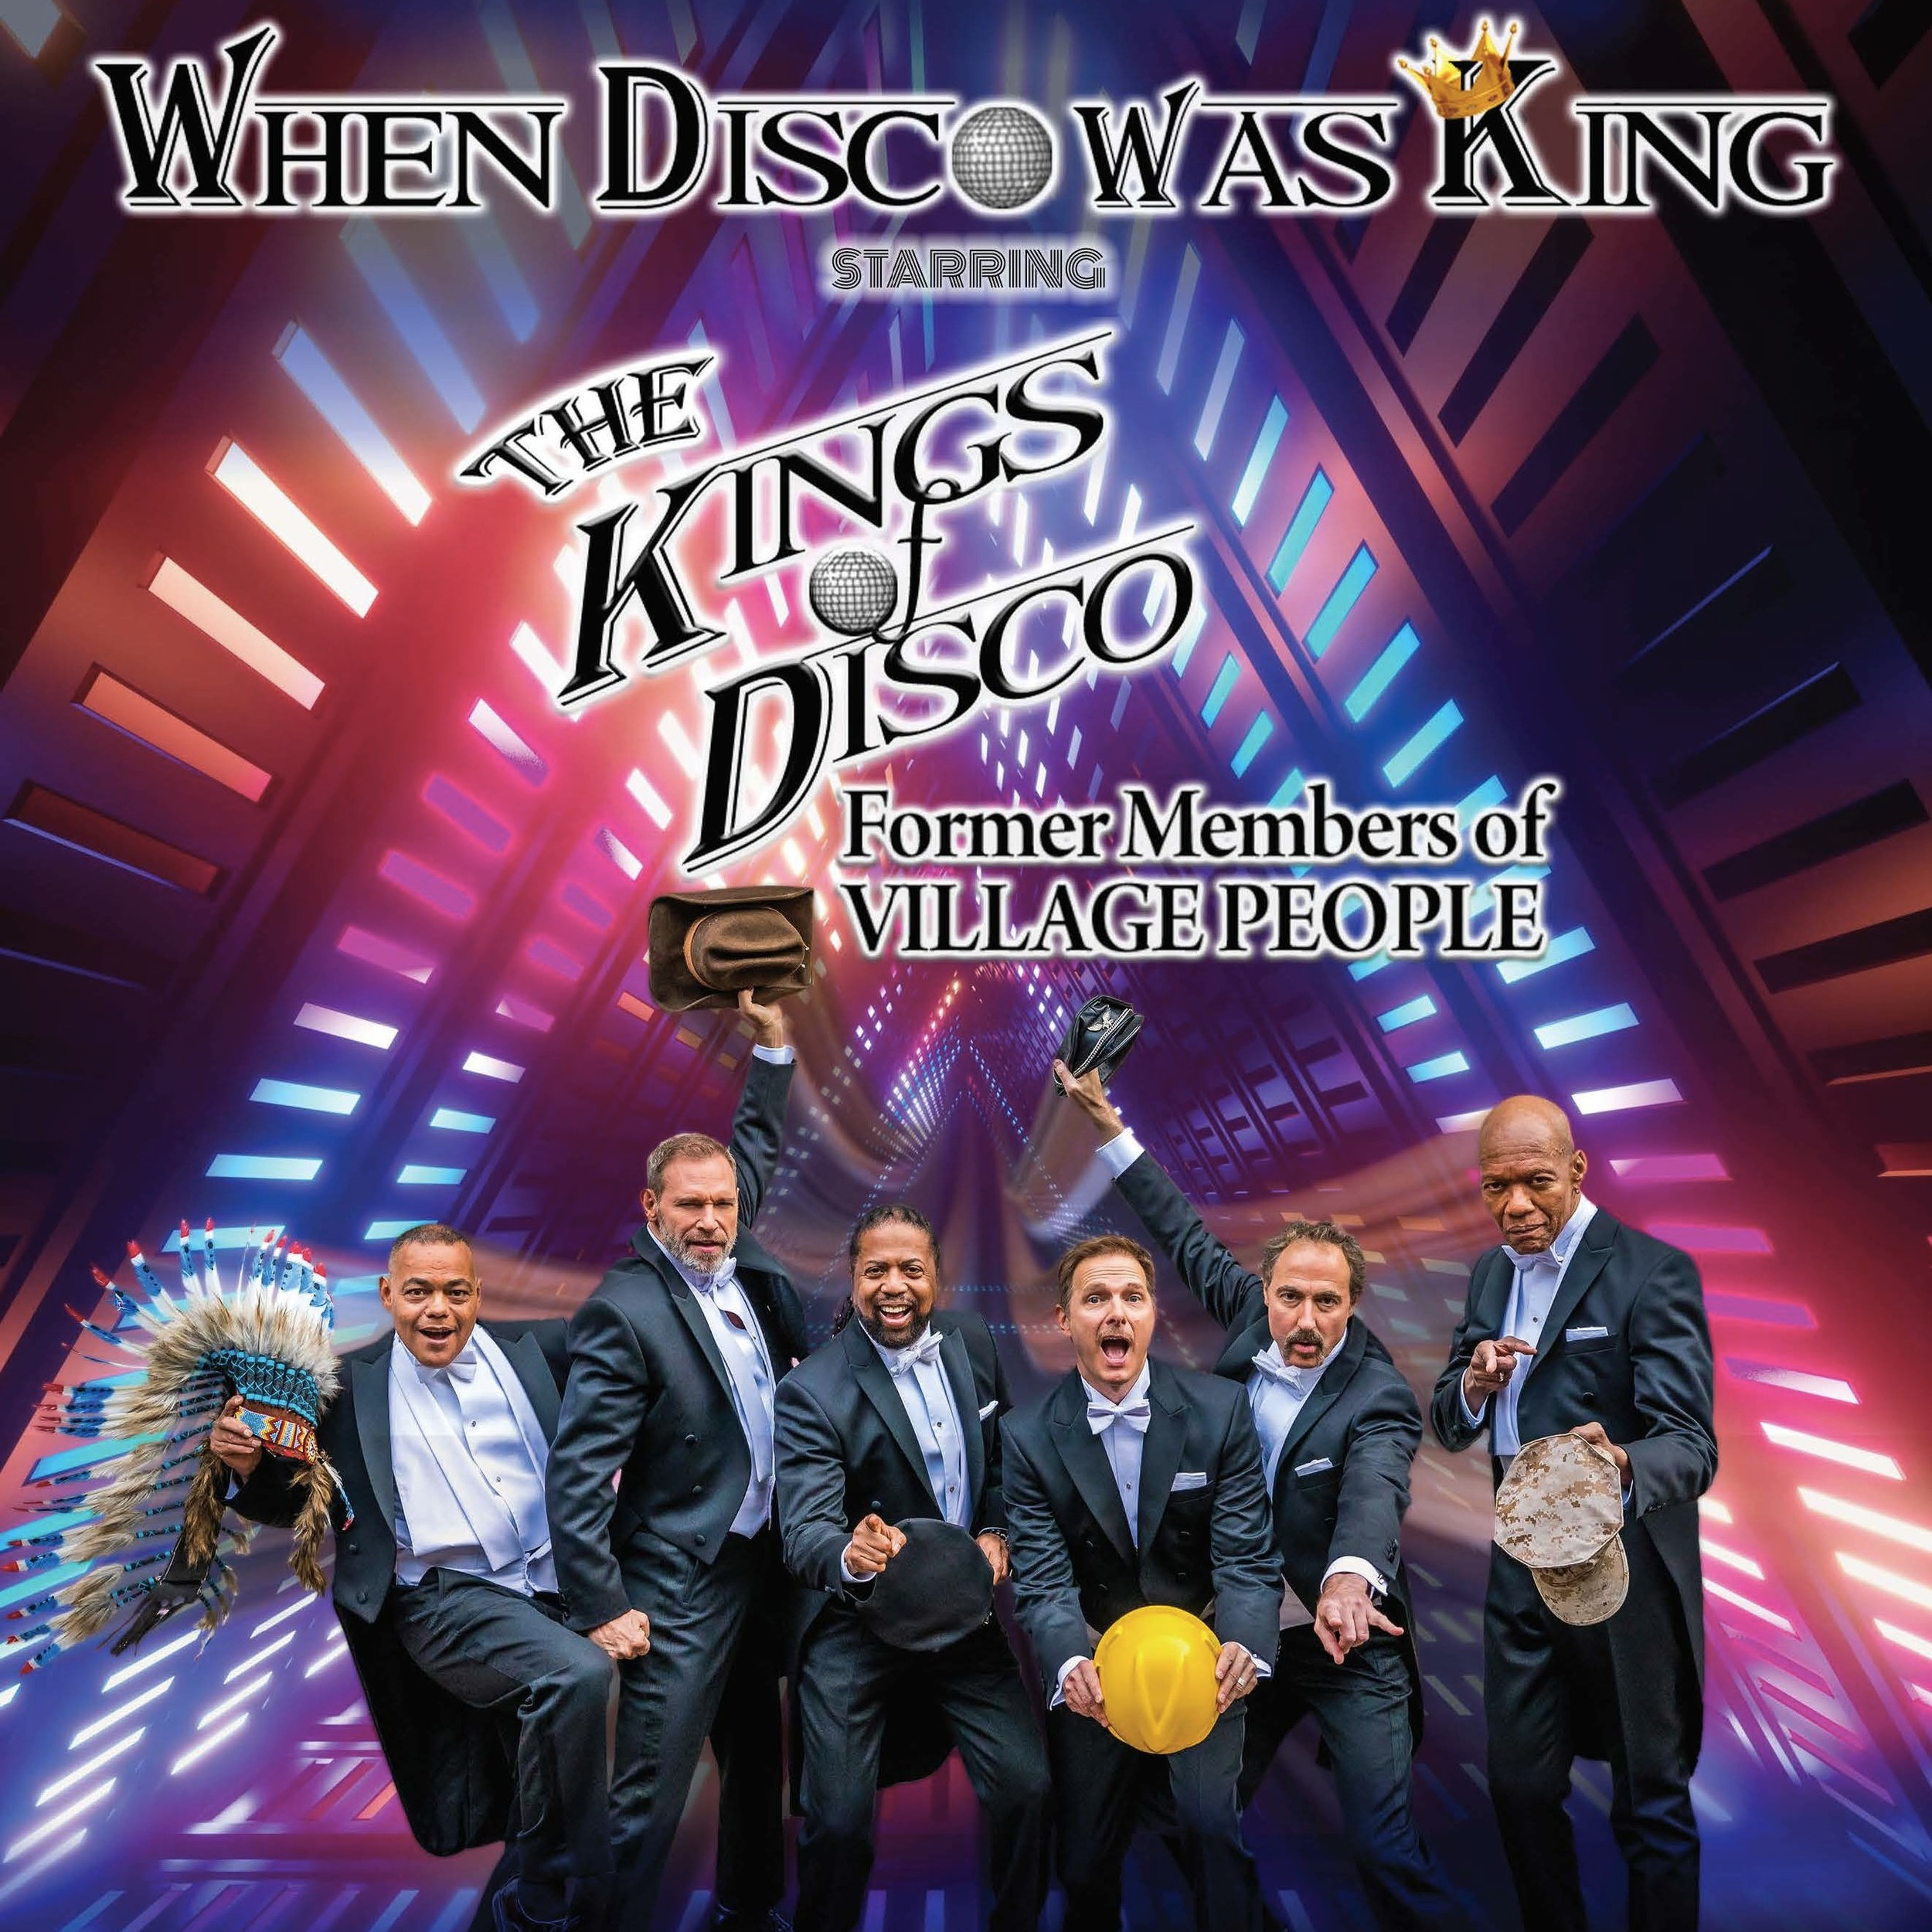 WHEN DISCO WAS KING - Former members of village people